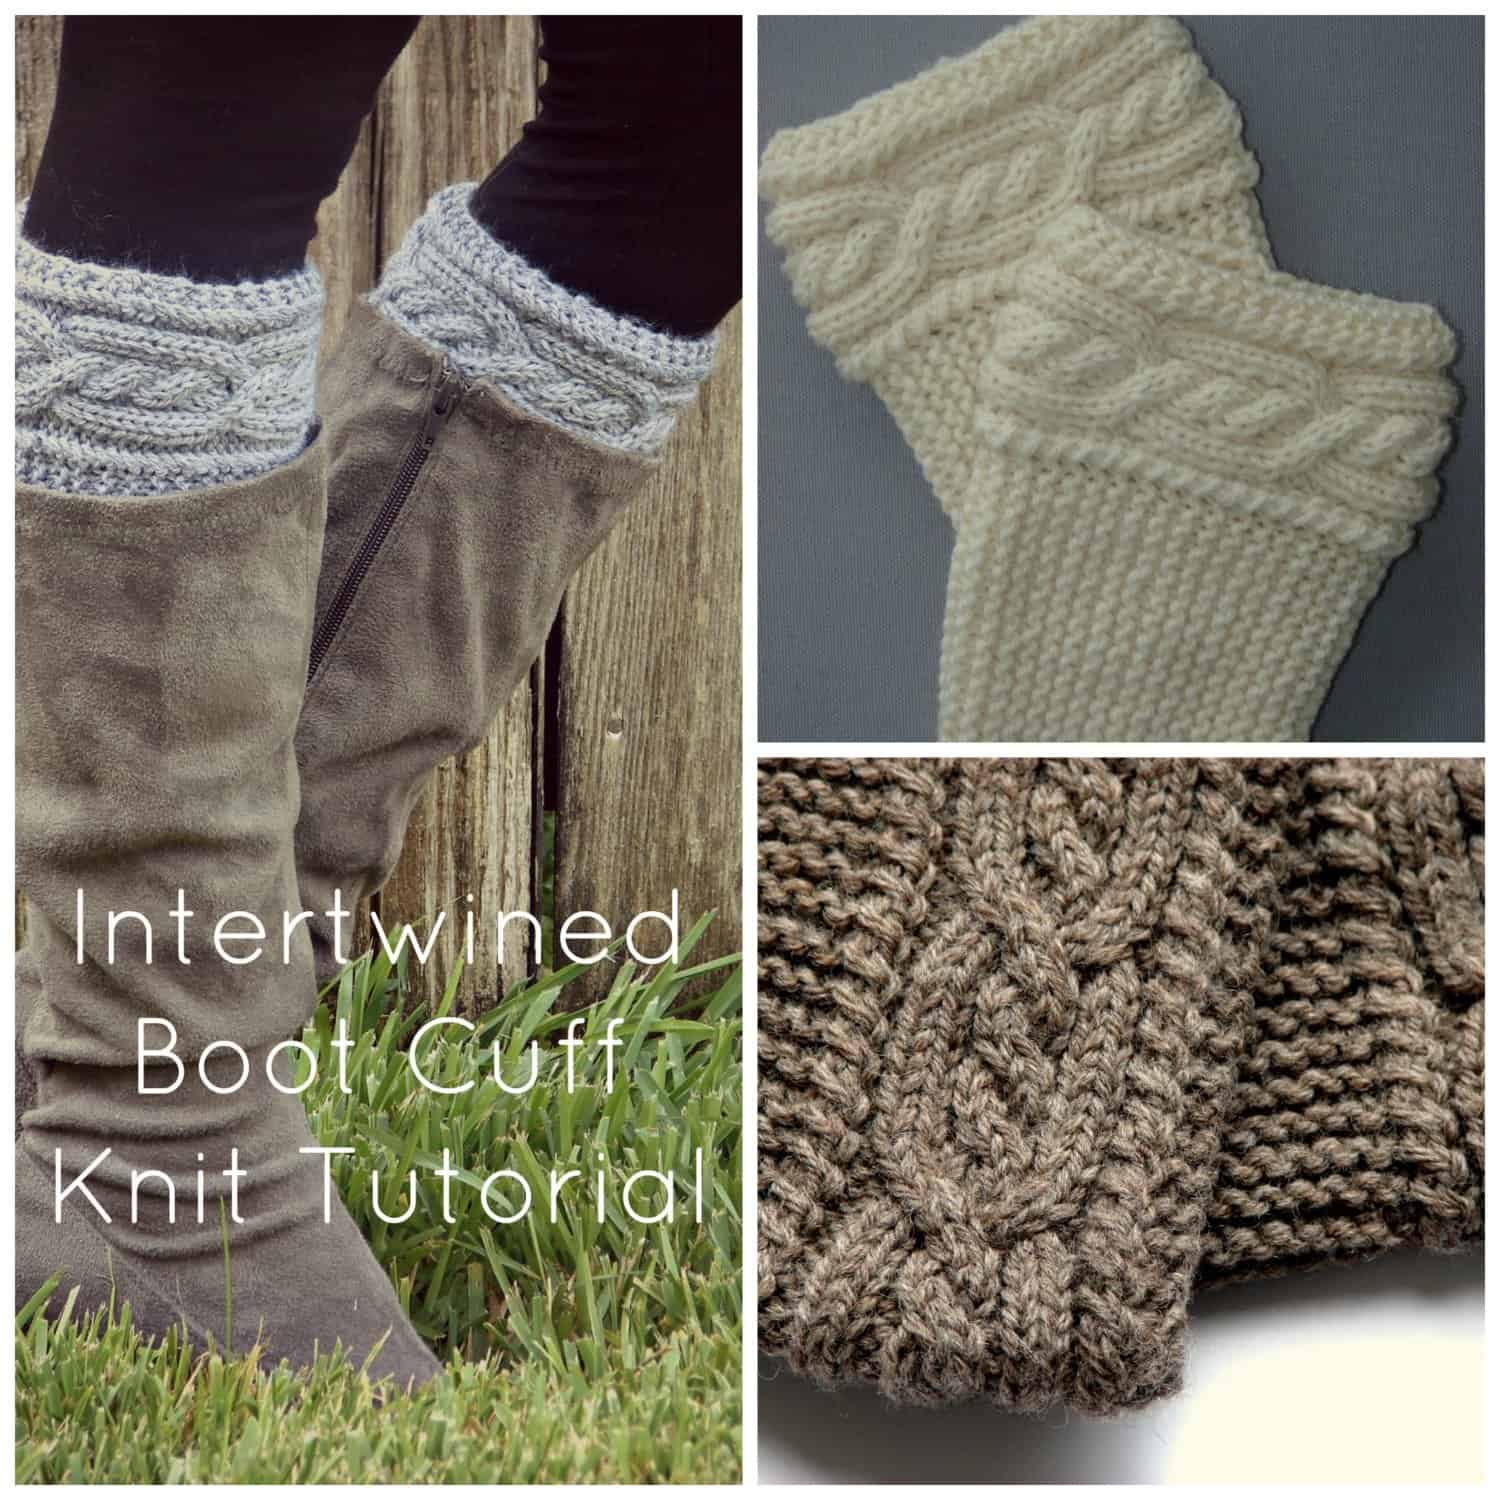 Intertwined Cable boot cuffs